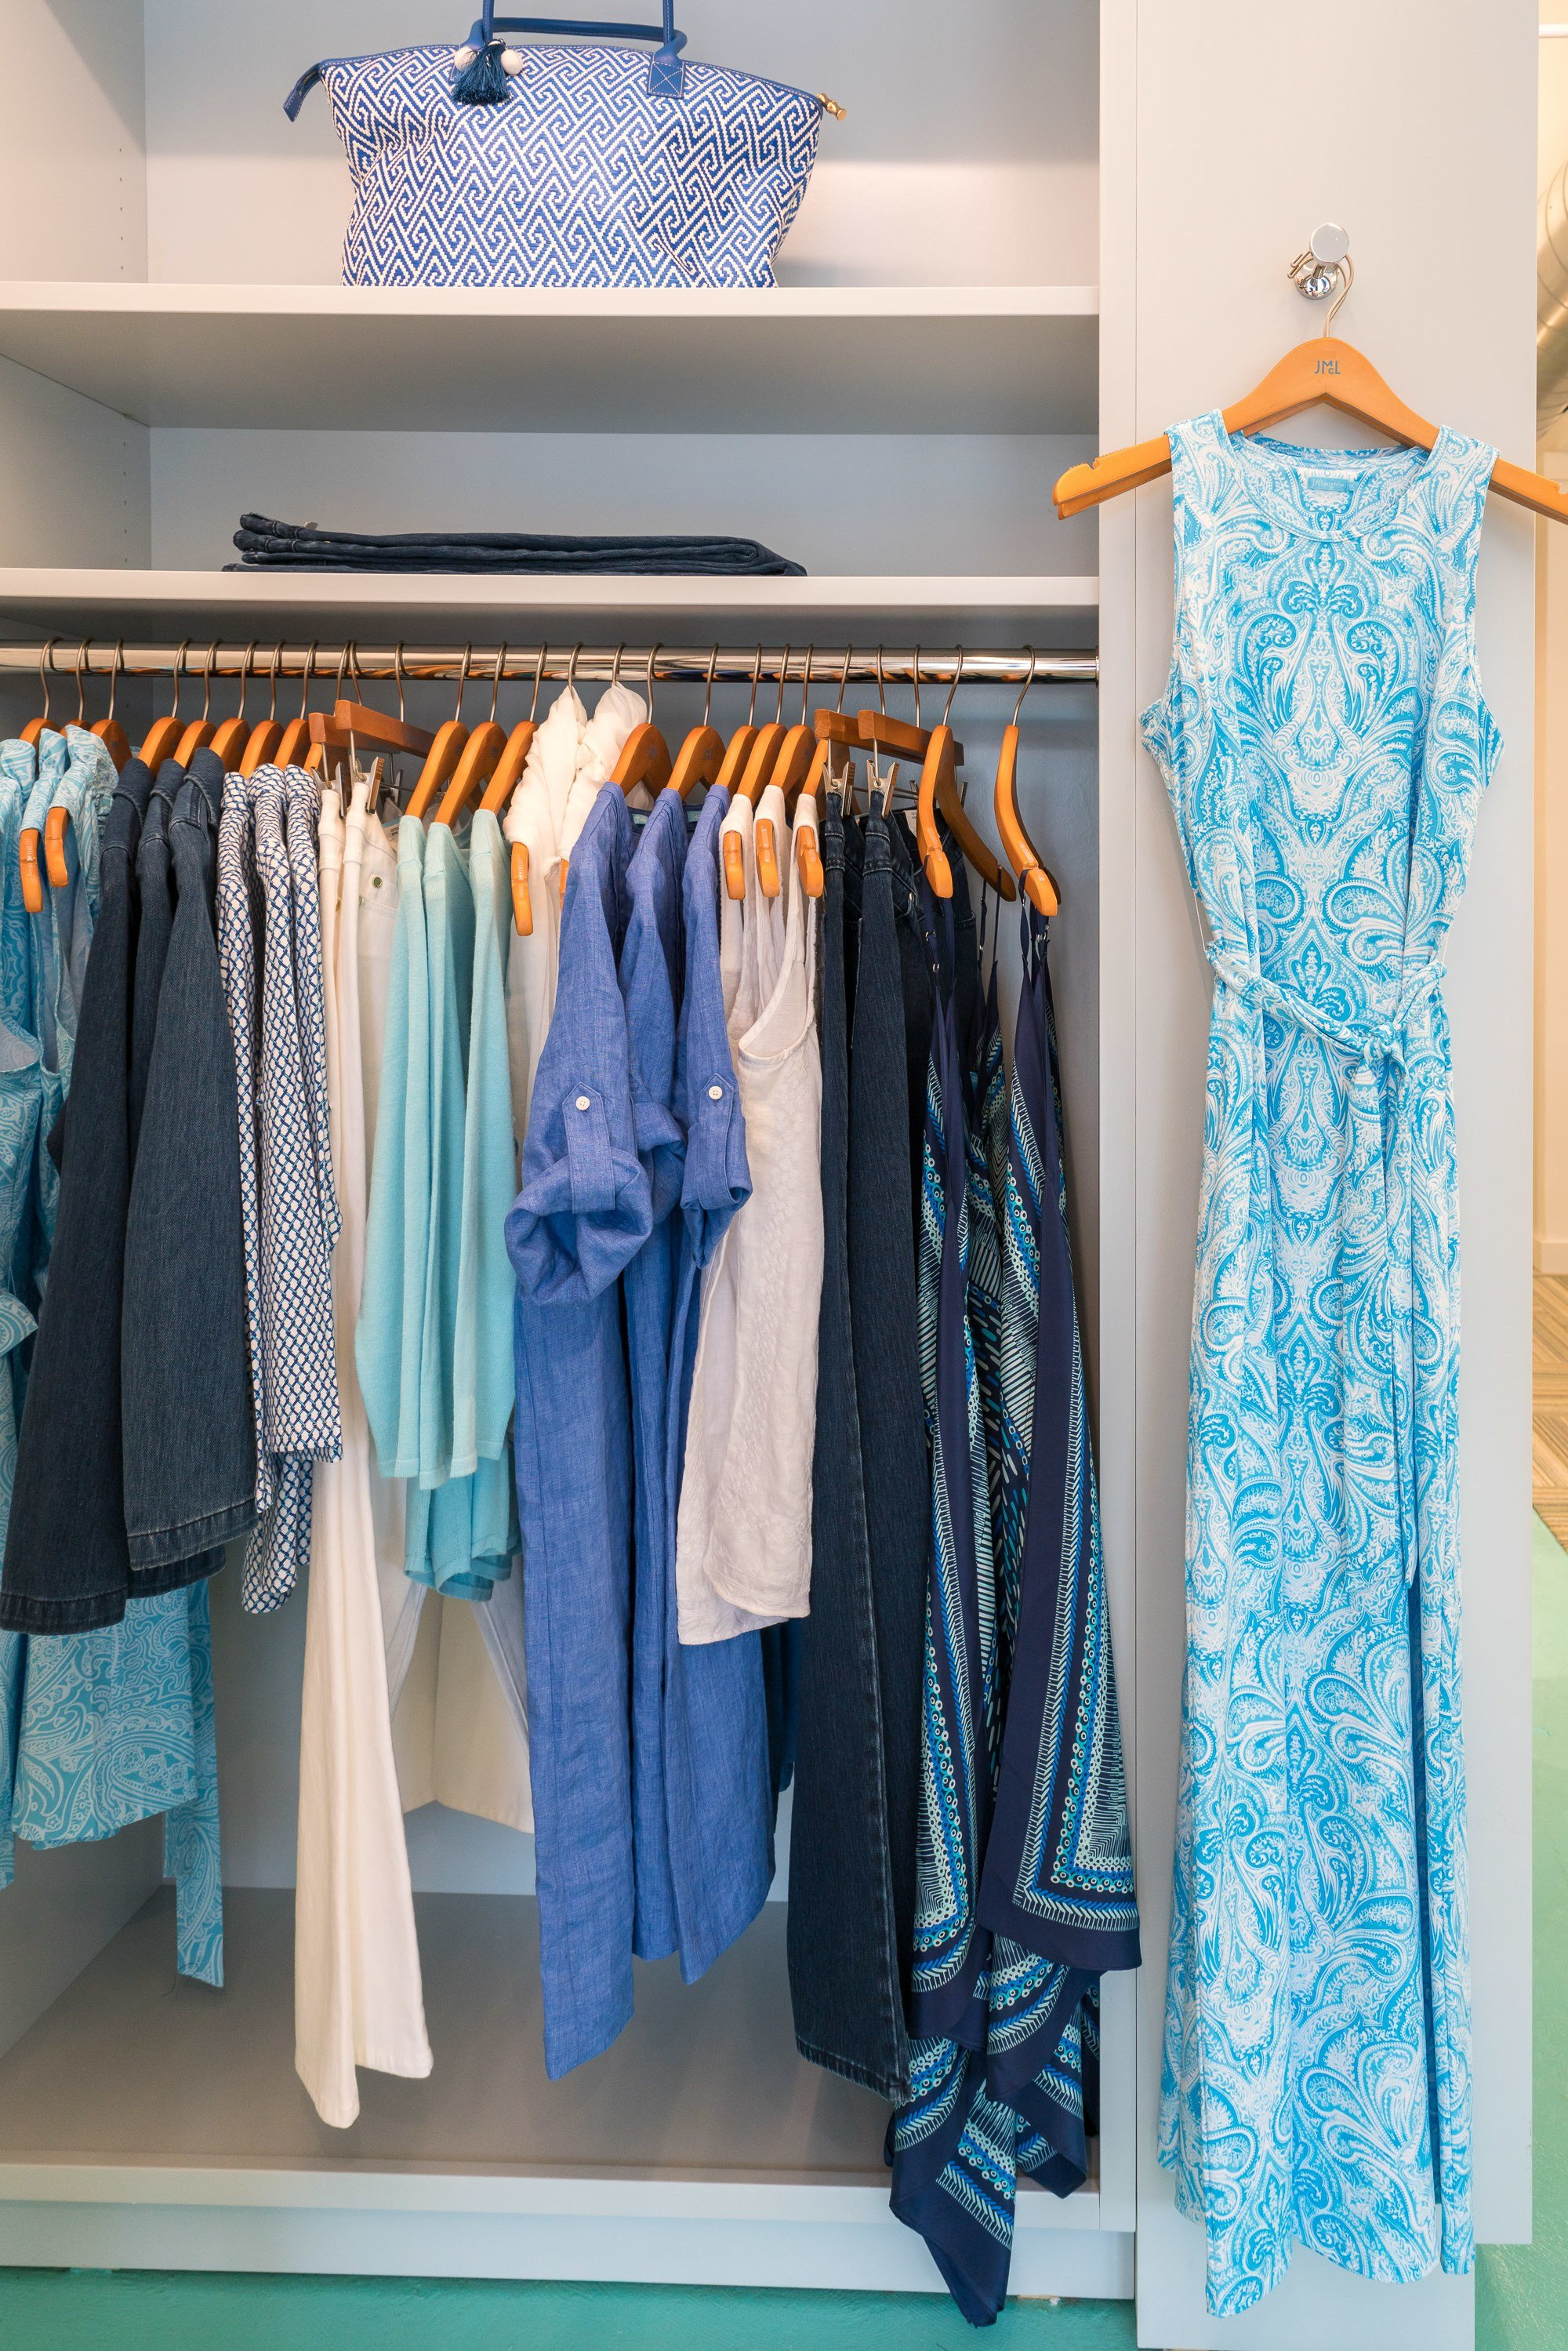 A peek inside the J.McLaughlin store in La Jolla.